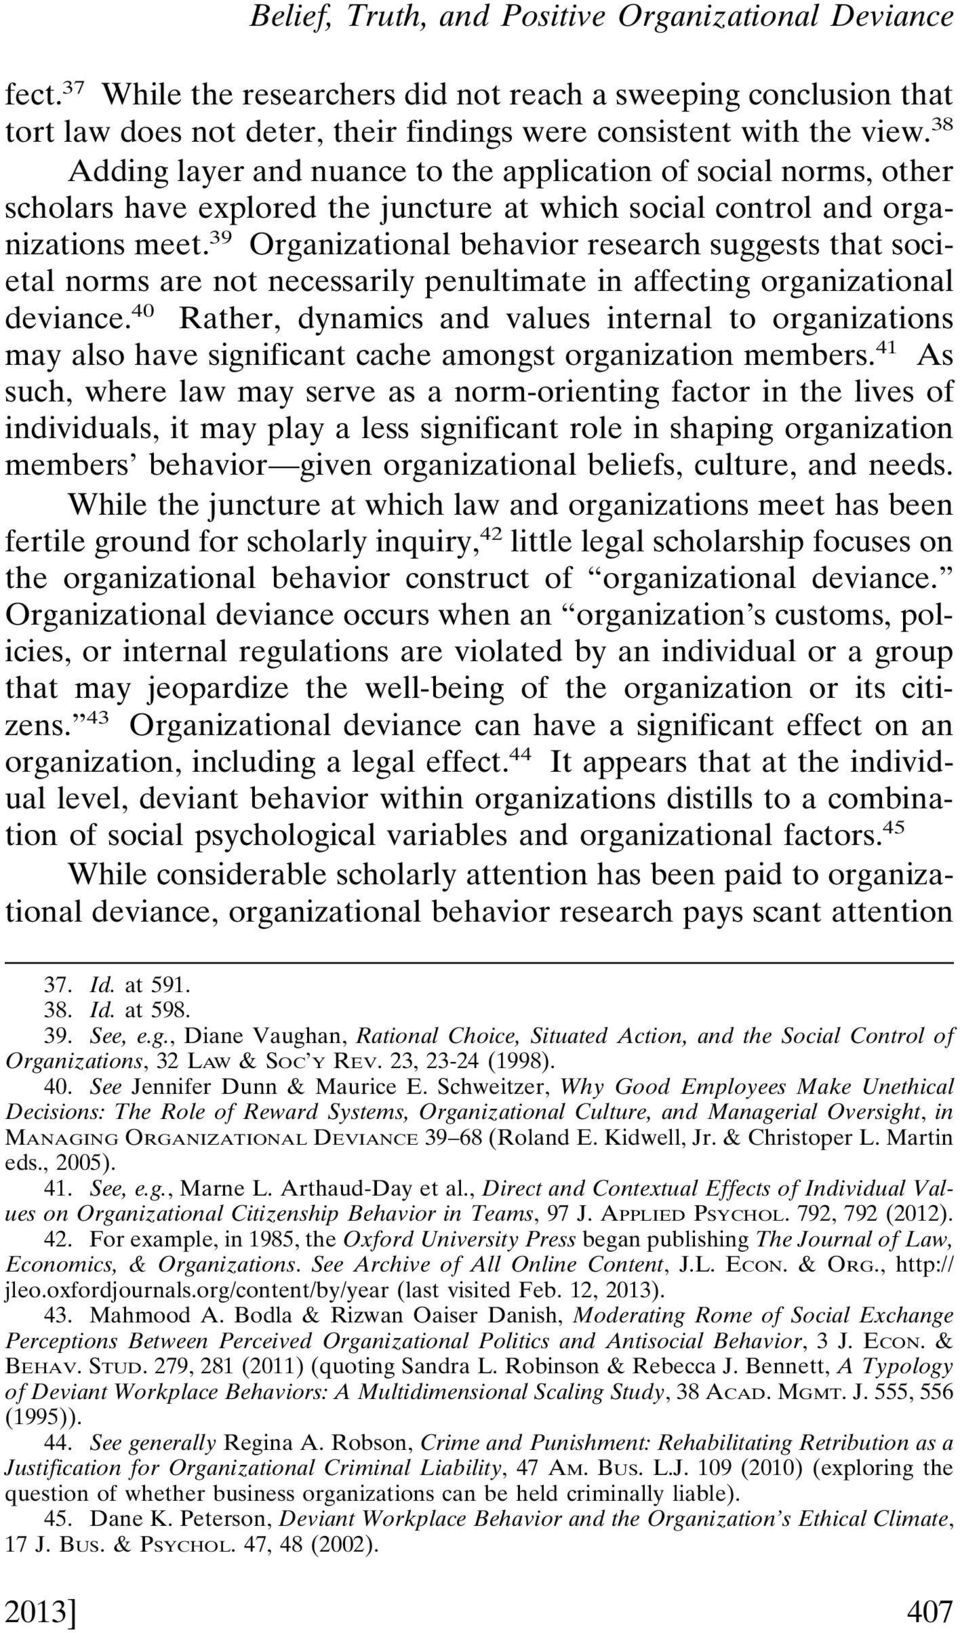 39 Organizational behavior research suggests that societal norms are not necessarily penultimate in affecting organizational deviance.